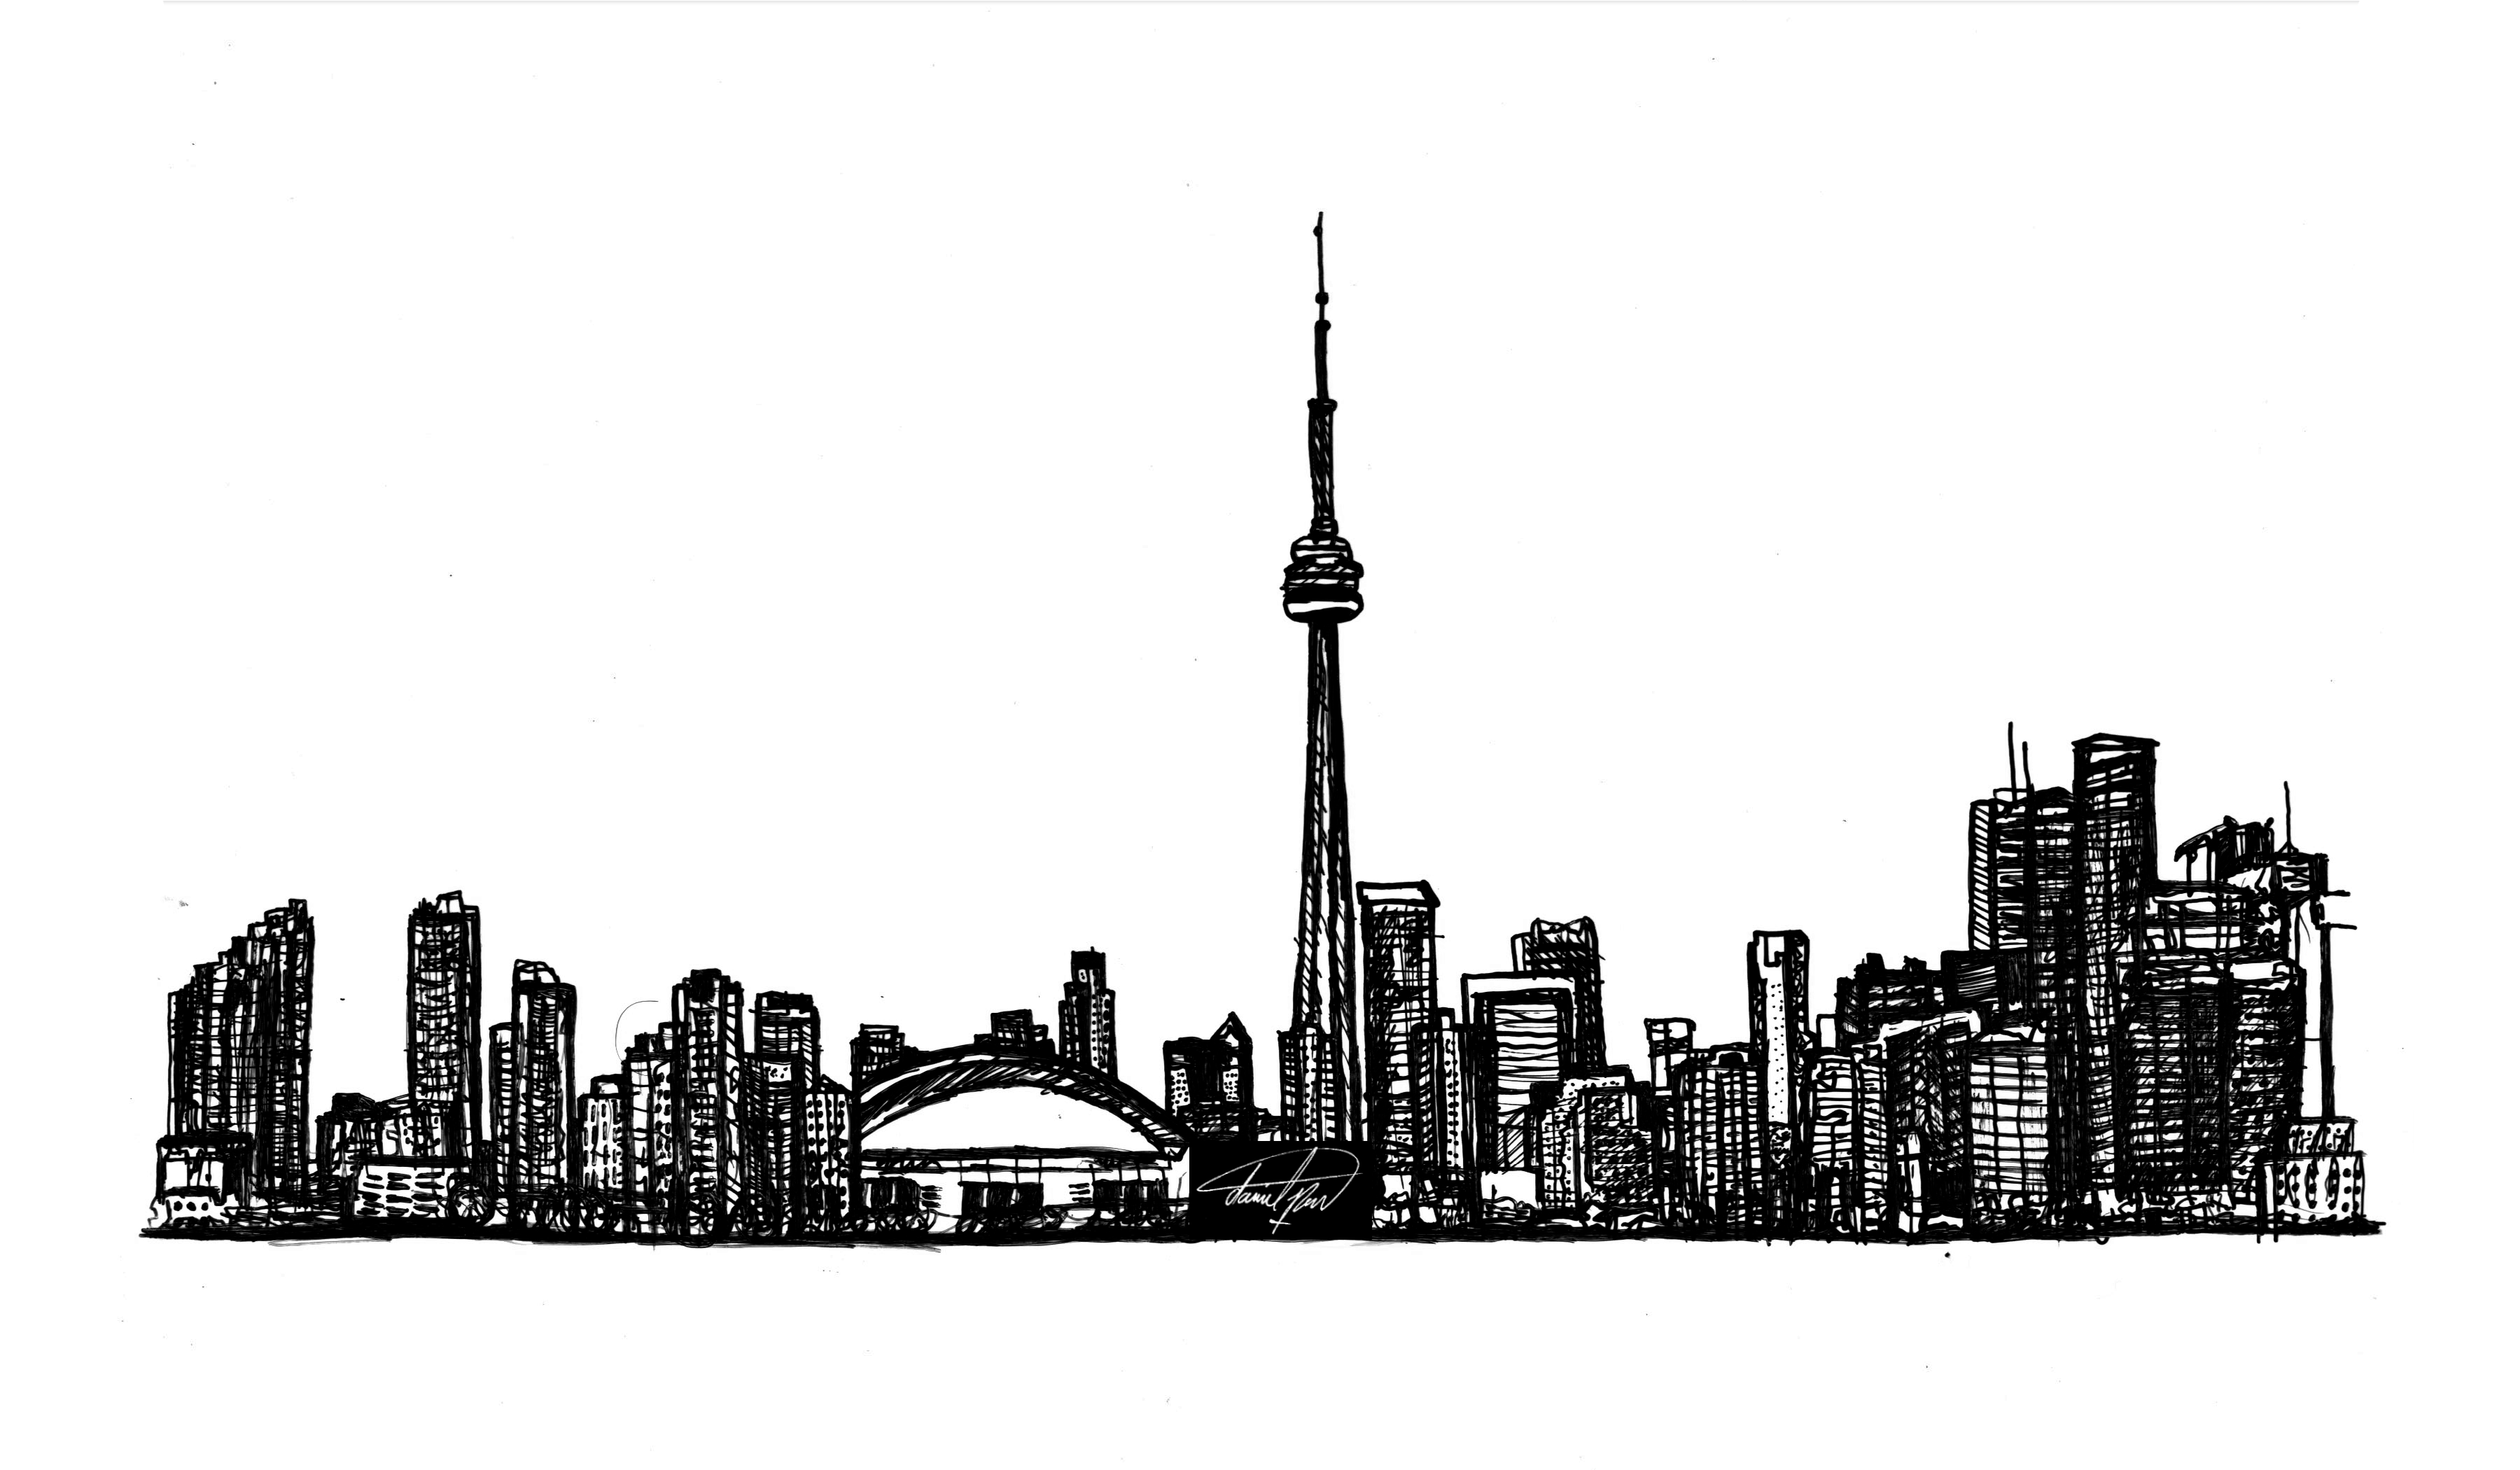 toronto skyline clipart toronto silhouette at getdrawings free download skyline toronto clipart